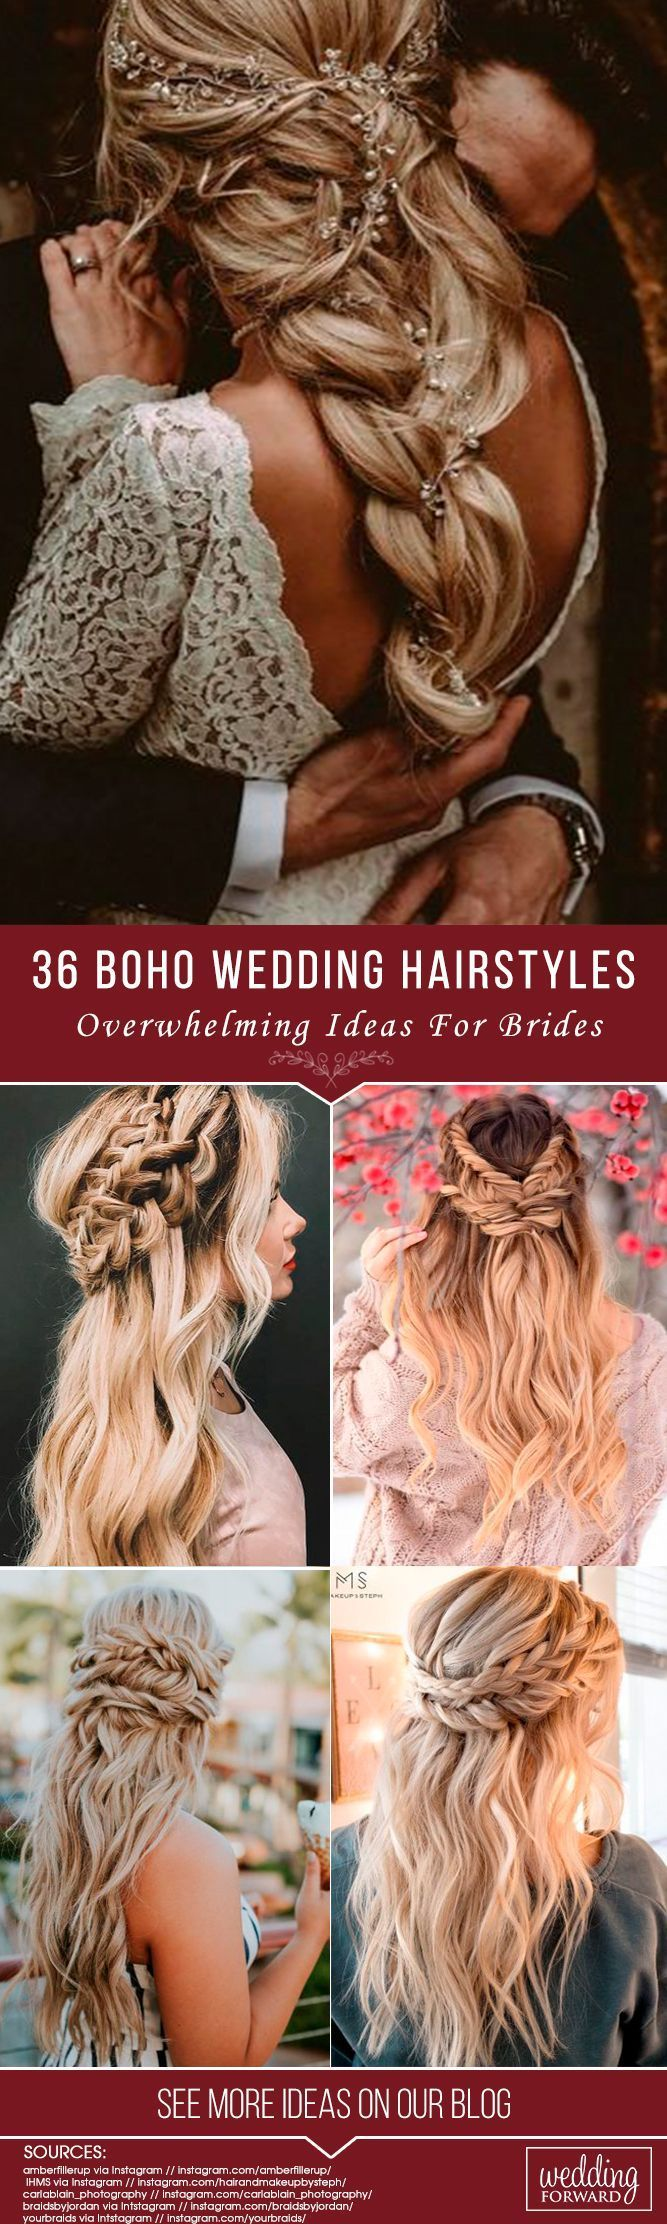 36 Overwhelming Boho Wedding Hairstyles ❤️ Here you will find a plethora of boho wedding hairstyles for any tastes, starting with elegant braided updos and ending with some creative solutions. See more: http://www.weddingforward.com/boho-wedding-hairstyles/ #weddinghairstyles